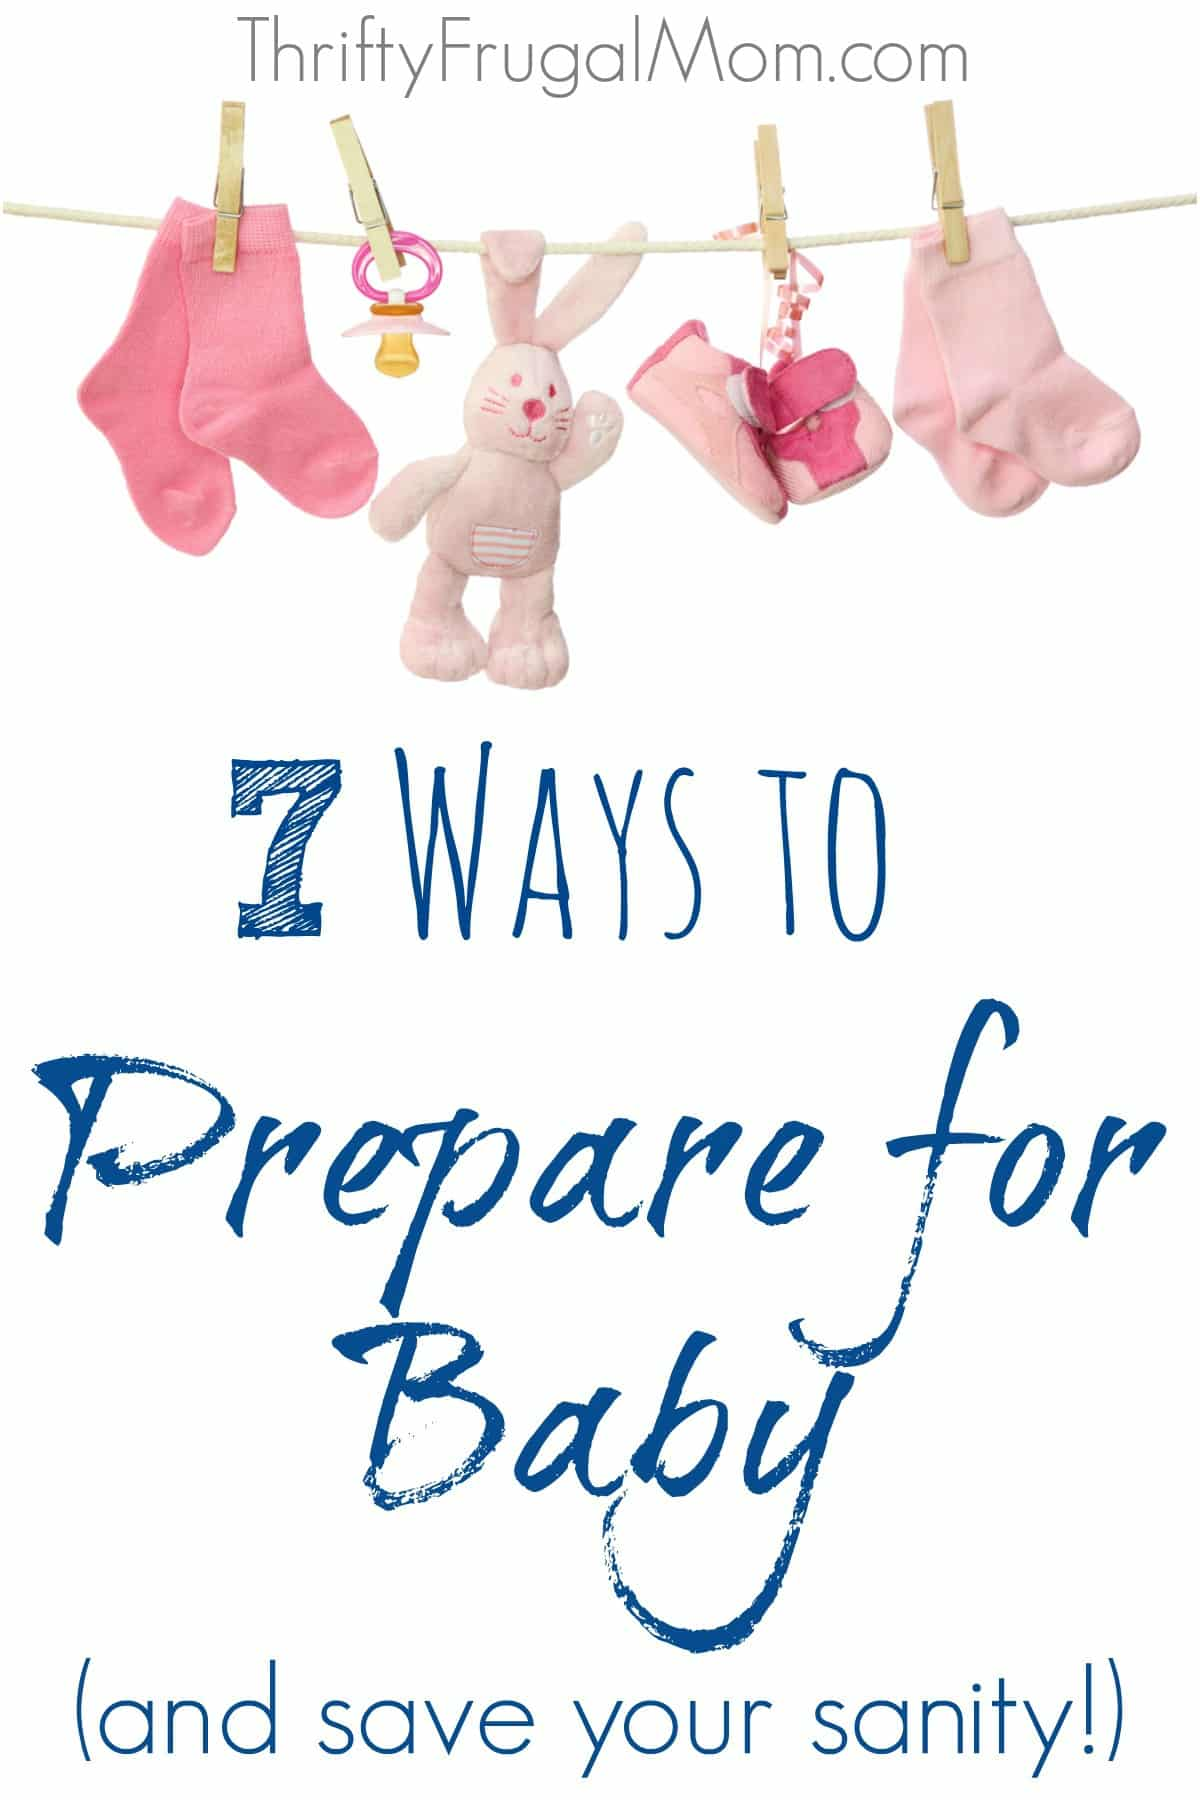 Practical money saving ways to prepare for baby, so that you can relax and enjoy your sweet little one once they are here! #baby #pregnancy